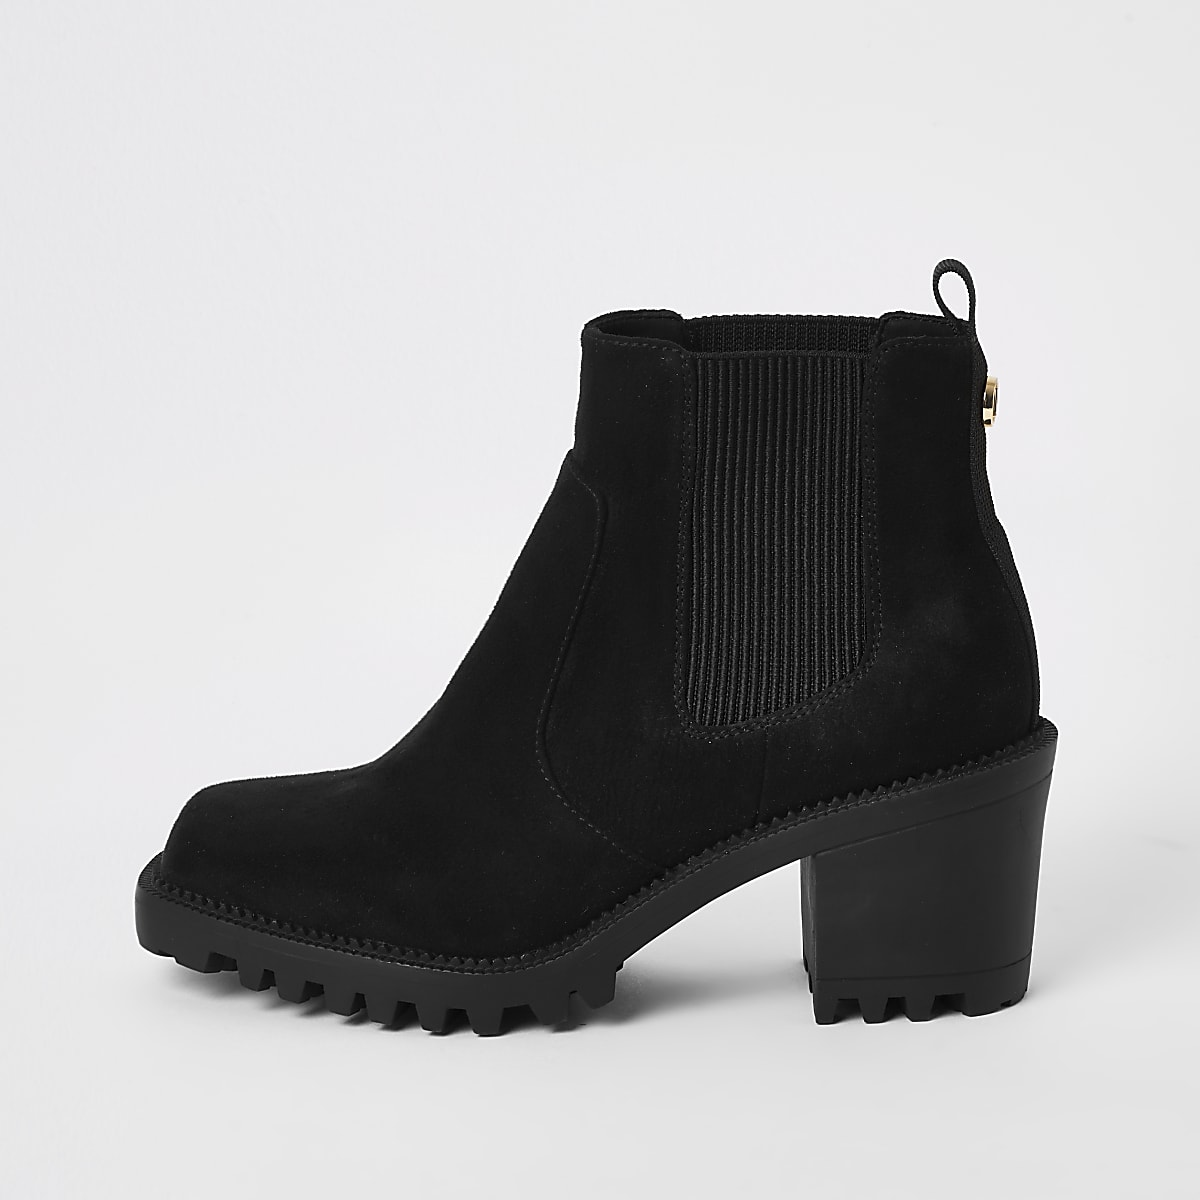 suedette heeled ankle boots Black toe square 2beYEDIWH9